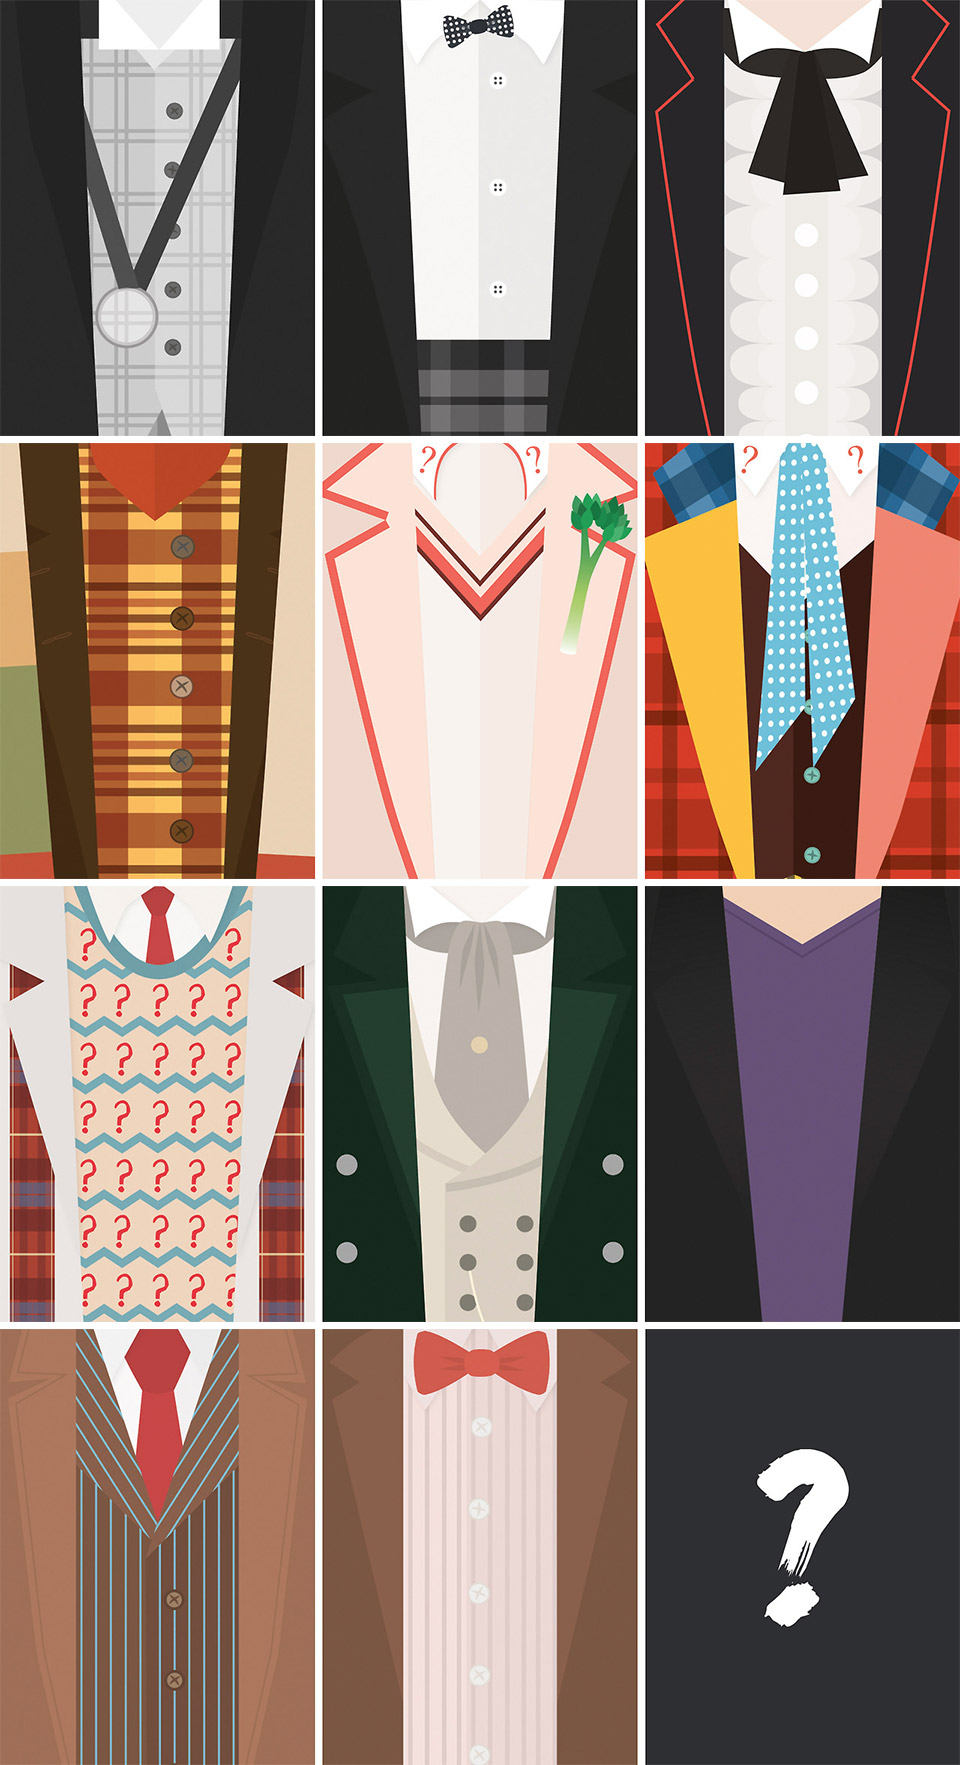 The Twelve Doctors: A Study in Outfits